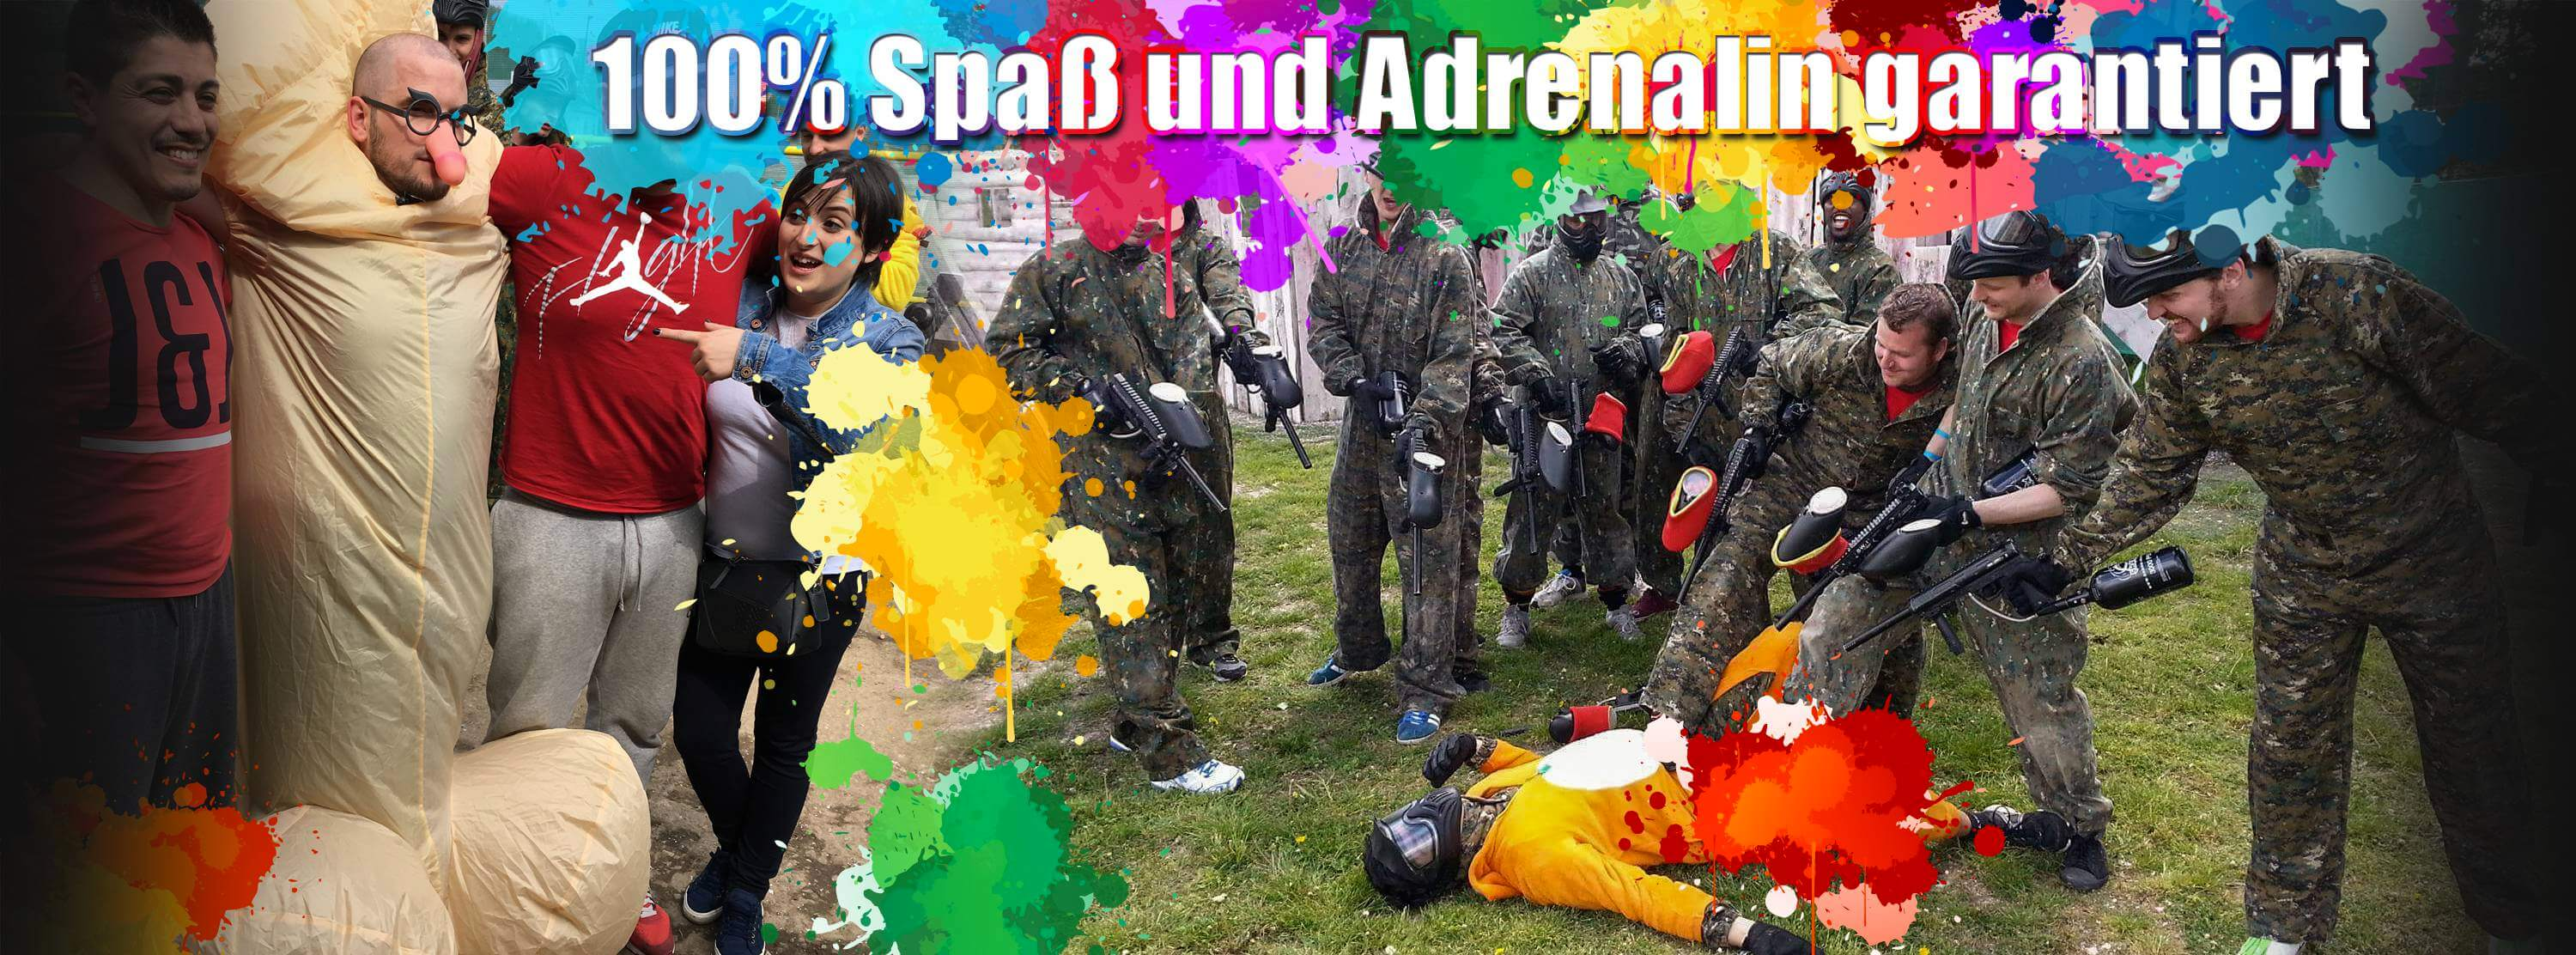 stag party paintball prag junggesellenabschied